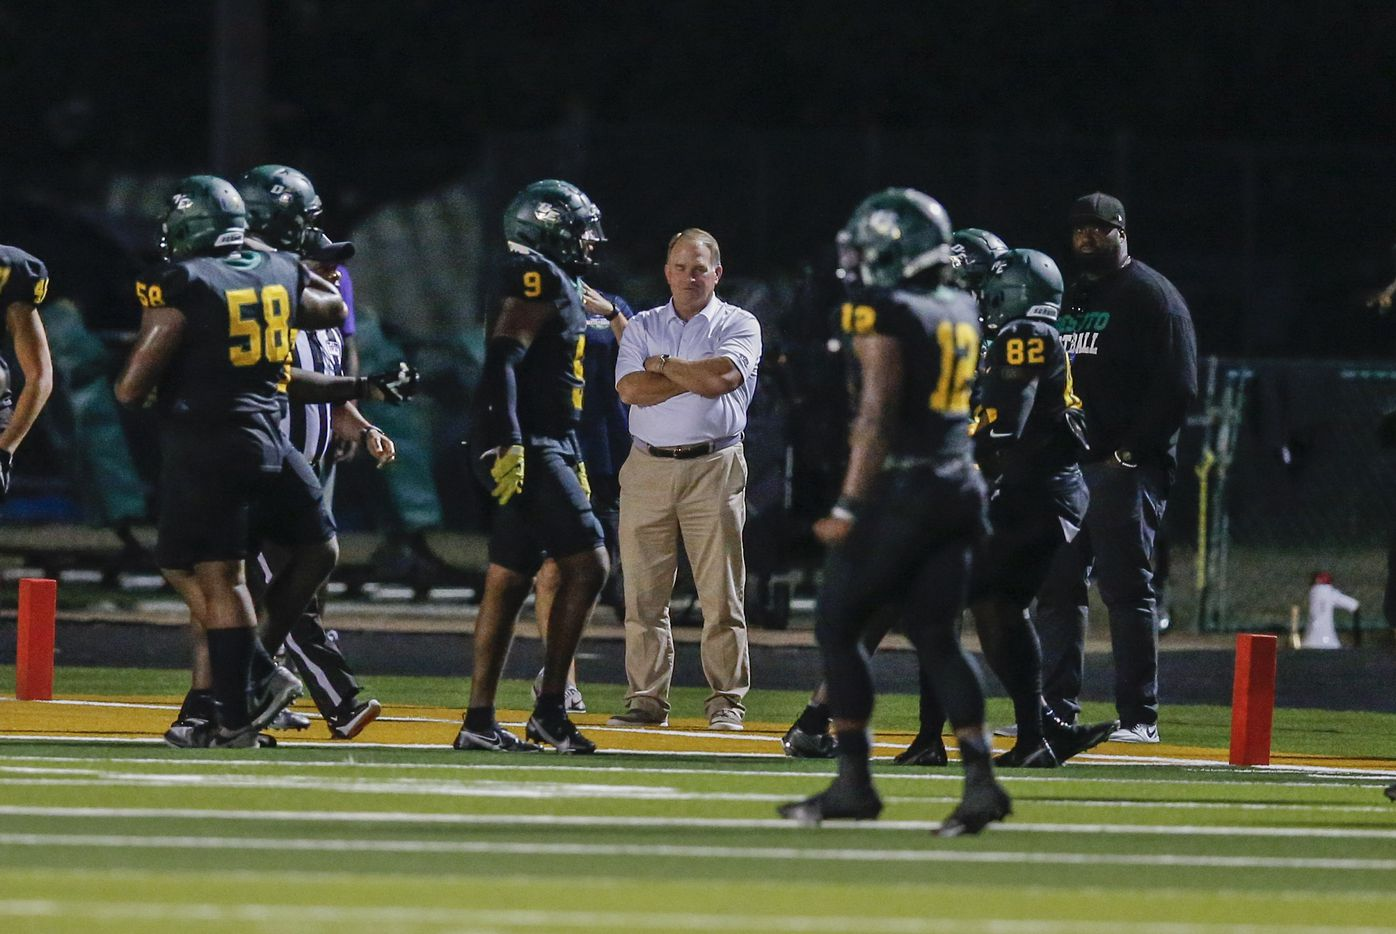 TCU head football coach Gary Patterson, center, looks on from the sidelines during the first half of a high school football game between Duncanville and DeSoto at DeSoto High School, Friday, September 17, 2021. (Brandon Wade/Special Contributor)